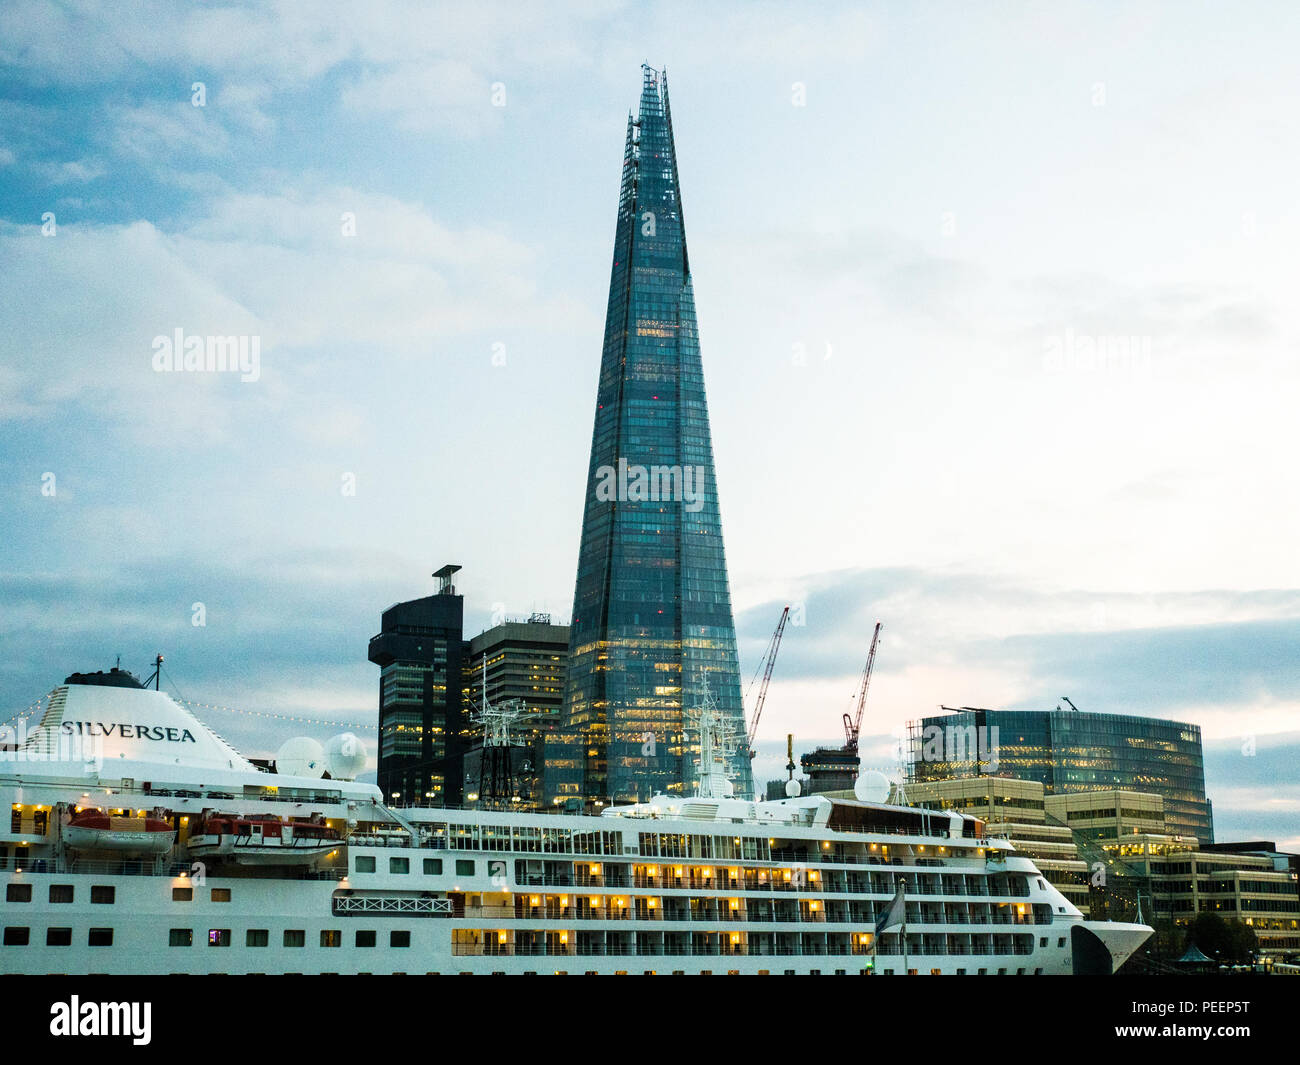 Cruise Ship on the River Thames with The Shard (of Glass) skyscraper in the background, London. - Stock Image